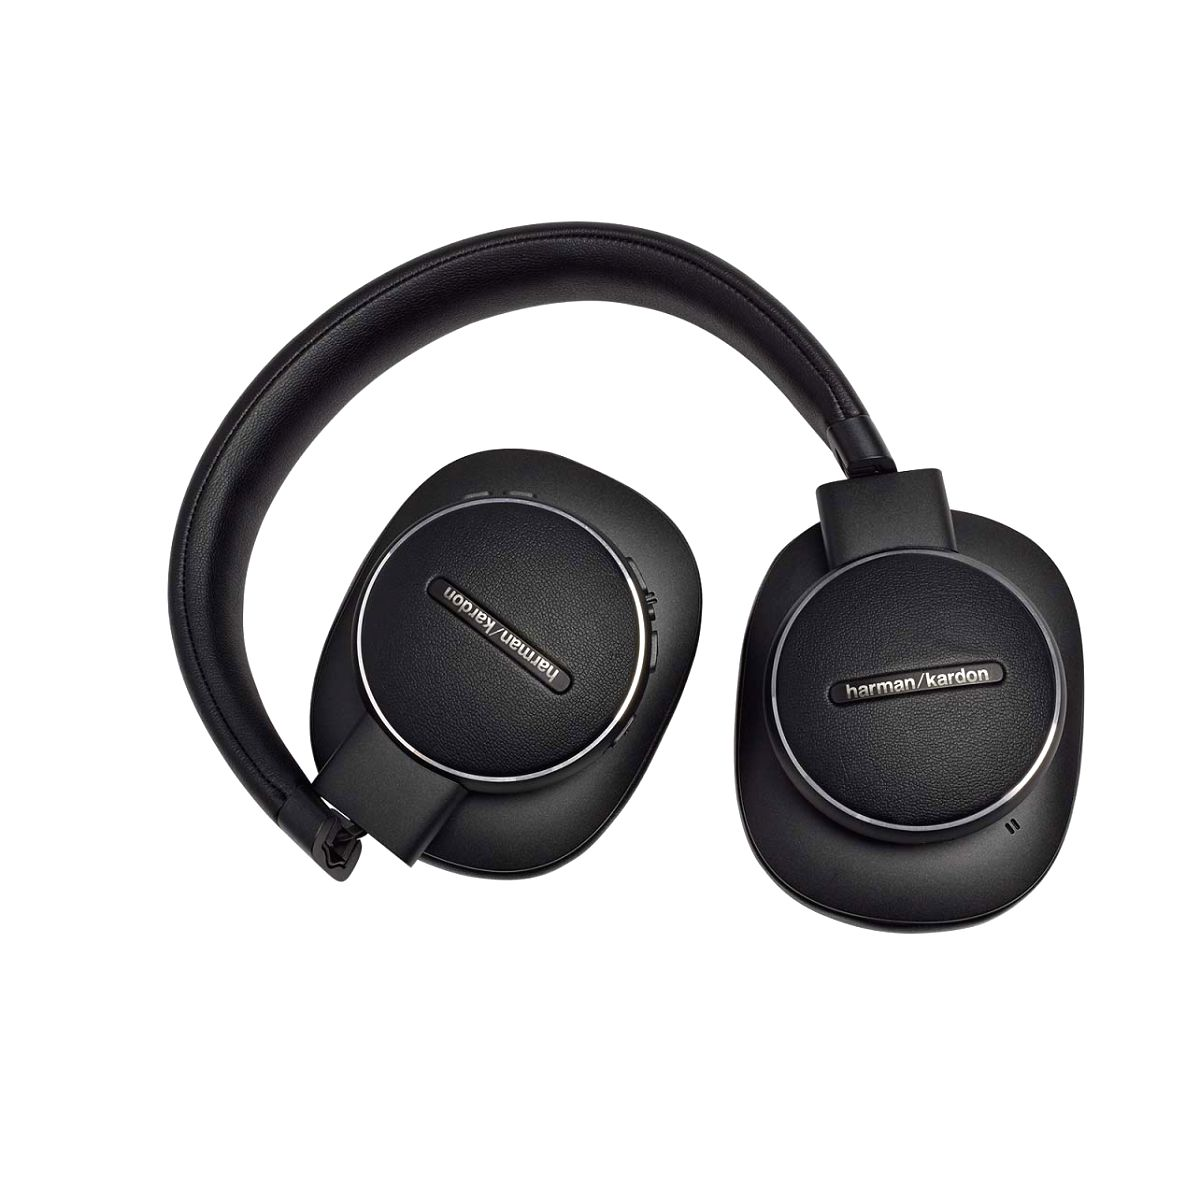 Harman Kardon launches a new range of Headphones in India.